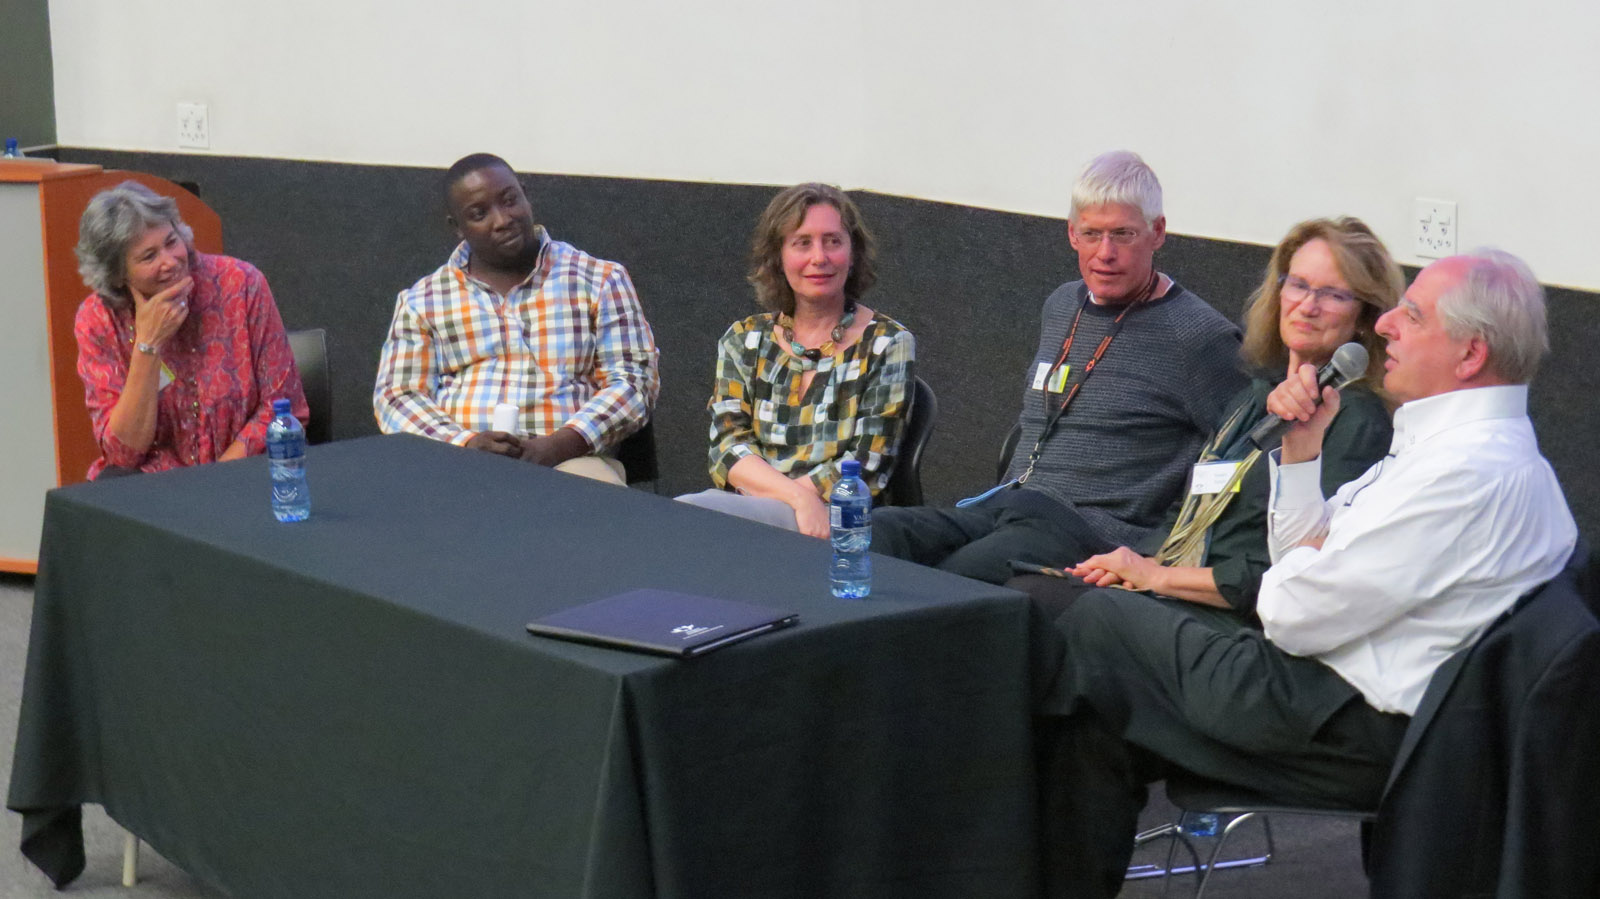 Click the image for a view of: Roundtable. A discussion of South African practitioners and studios working across disciplines. Kim Berman (chair) - discussants: Nathi Ndladla, Eliza Kentridge, Mark Attwood, Susan Gosin and William Kentridge. Friday 24 March